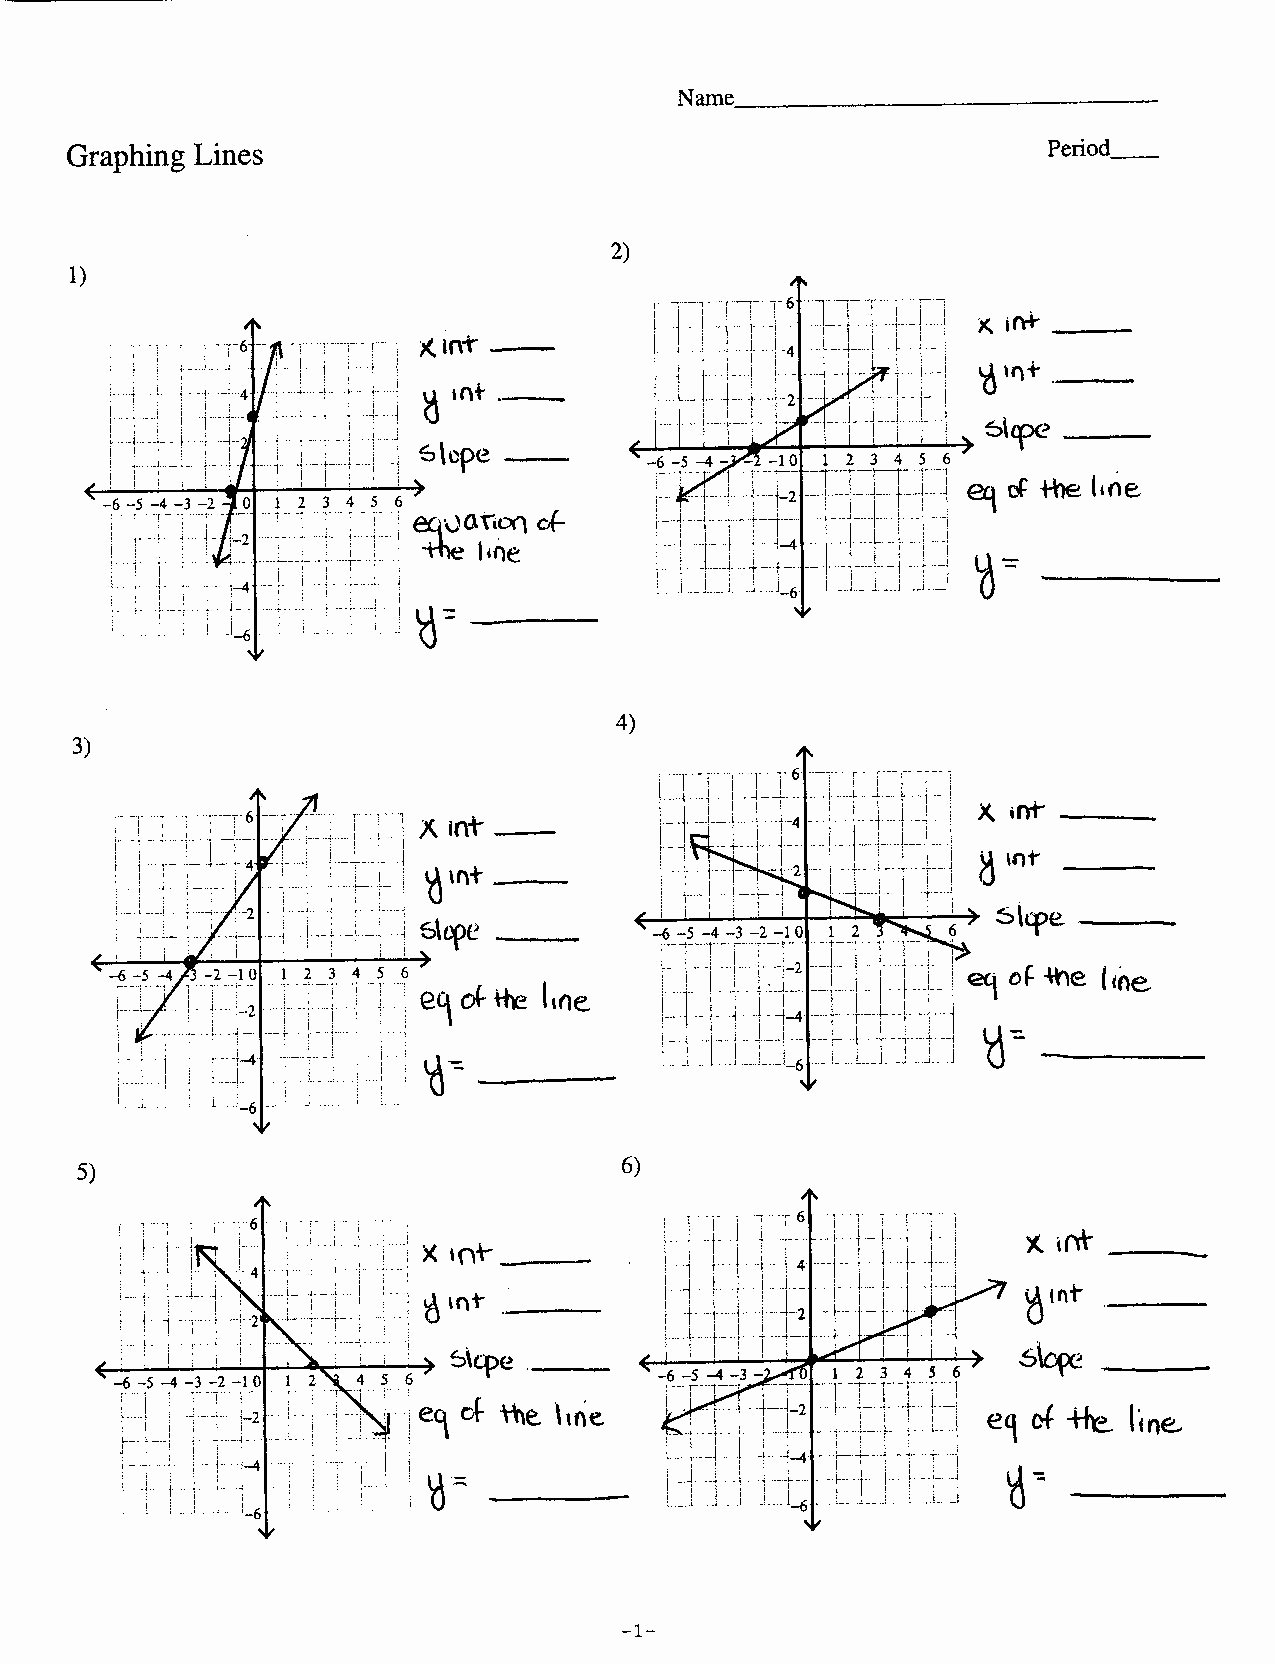 Graphing Systems Of Equations Worksheet Unique Graphing Equations In Slope Intercept form Worksheet